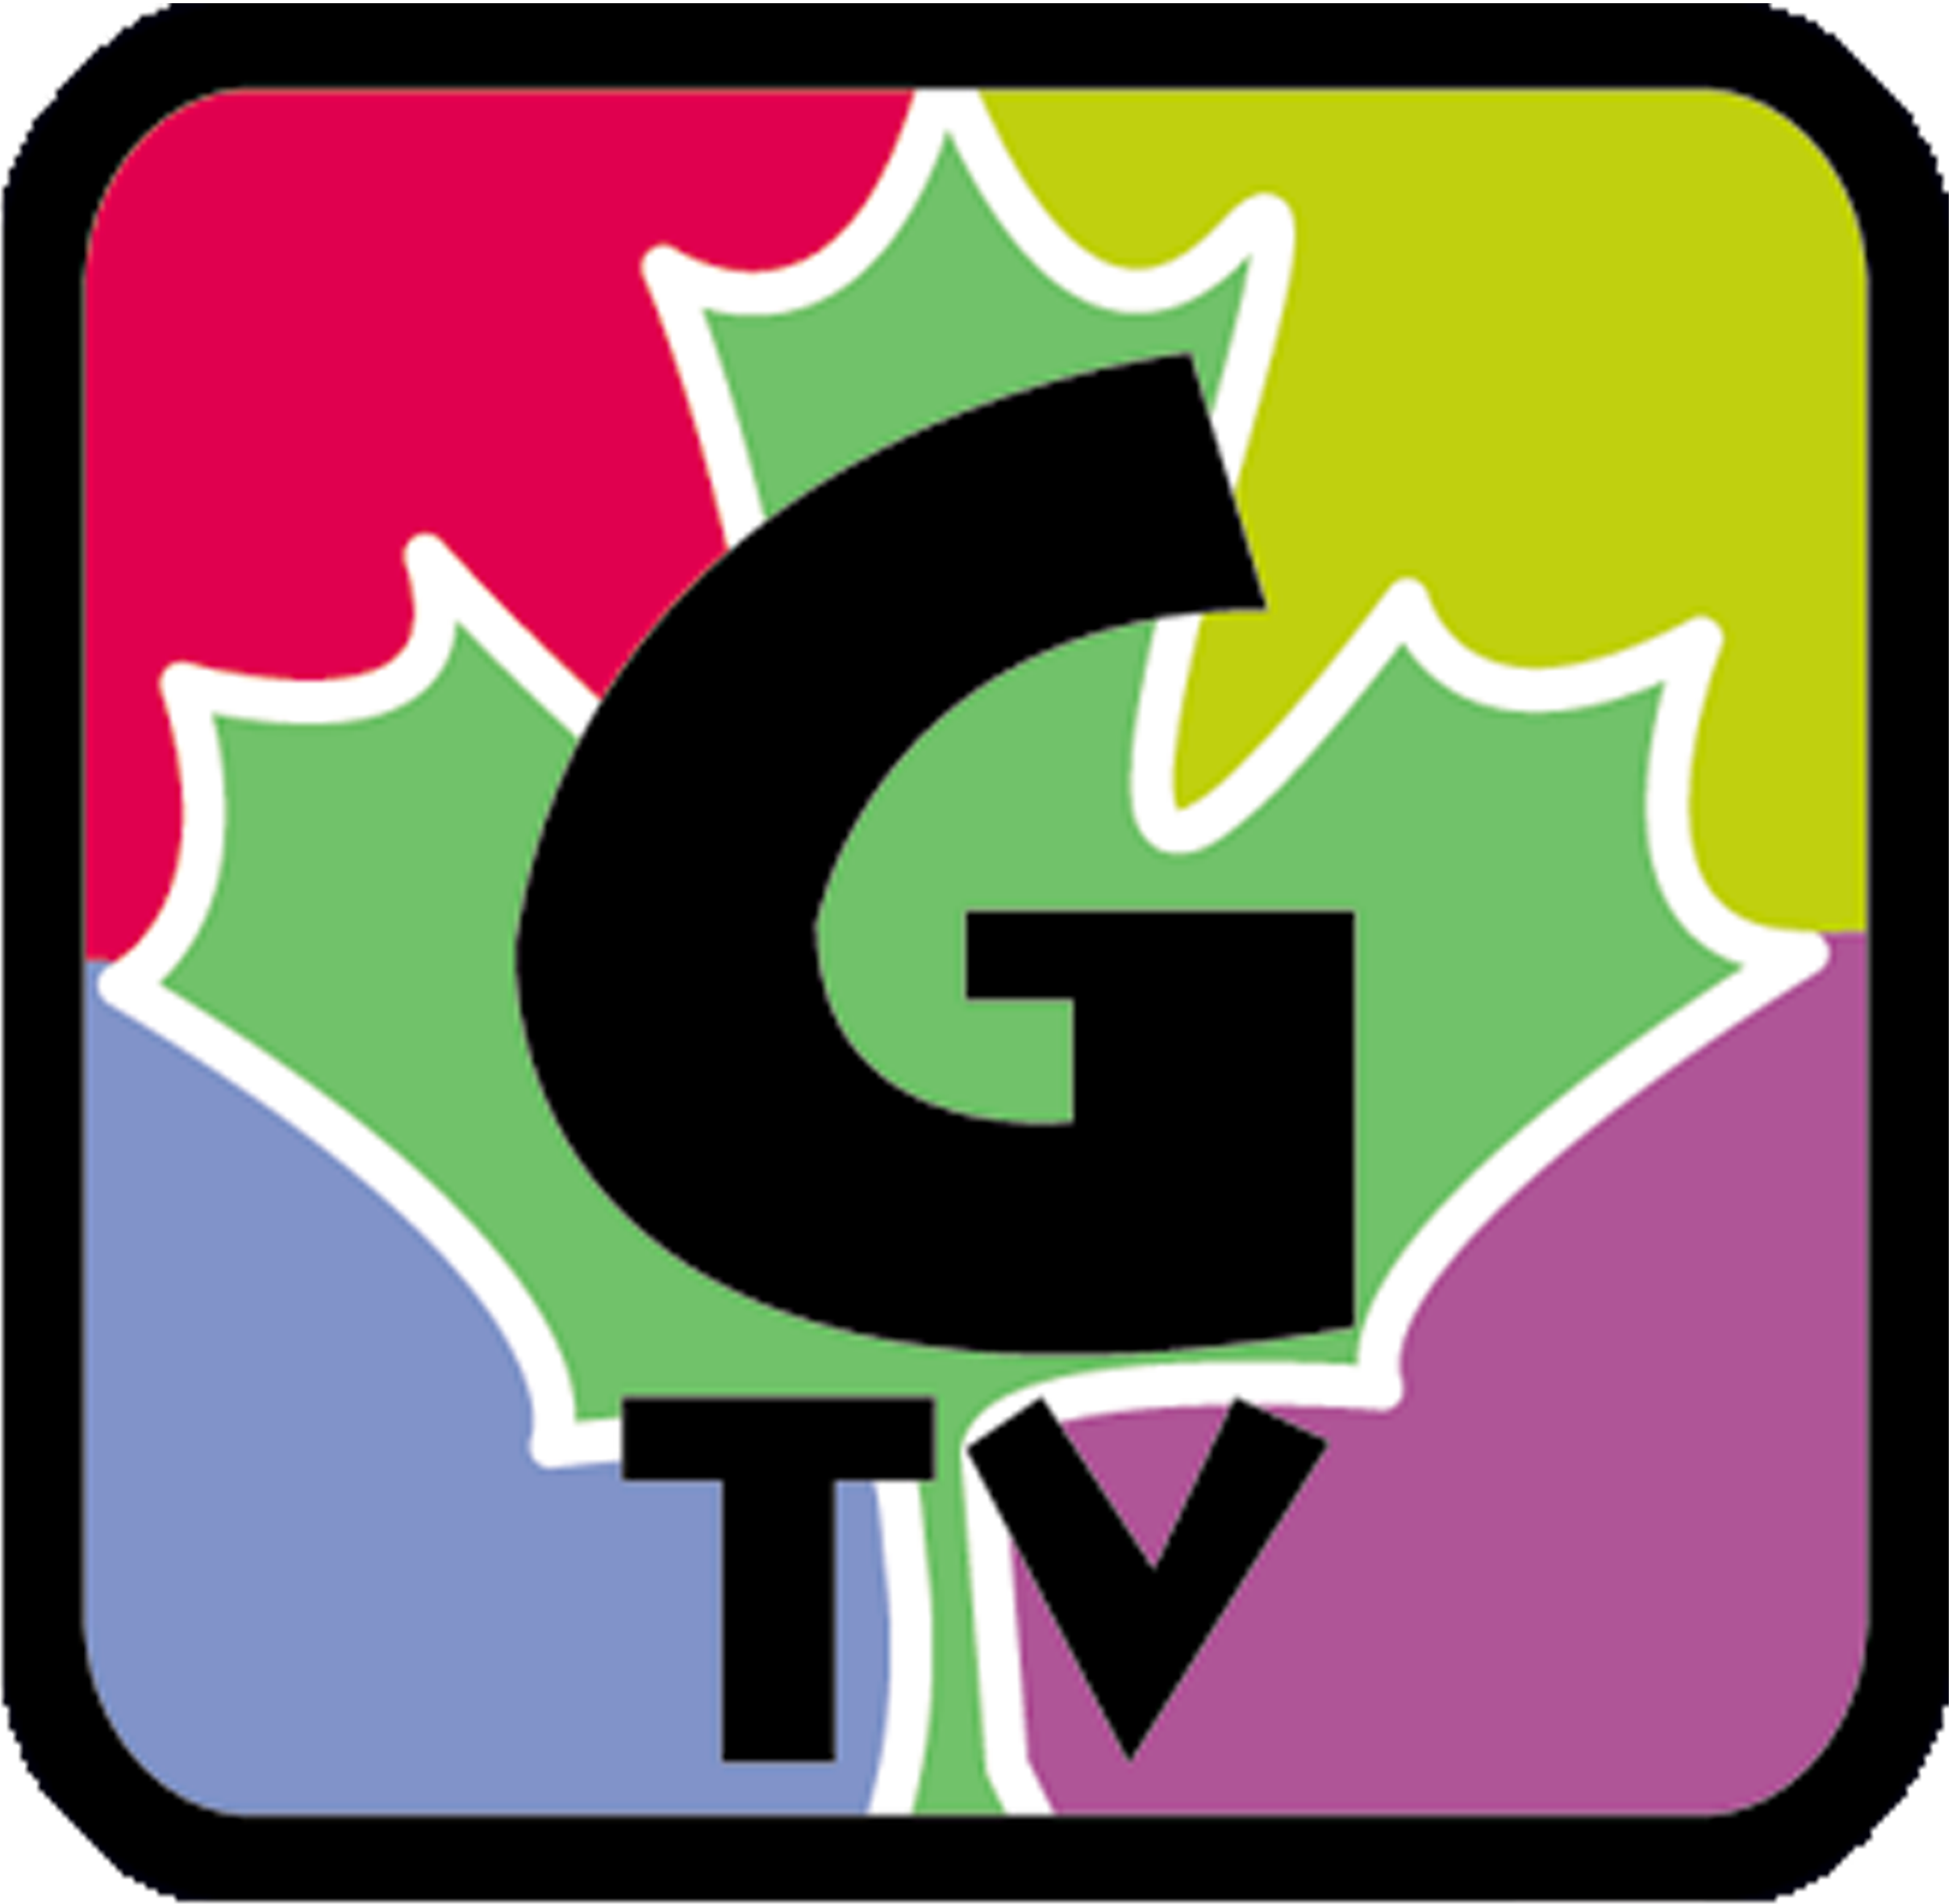 click image to access the Geauga-TV School Channel webpage / Channel 1025; image features the G-TV logo